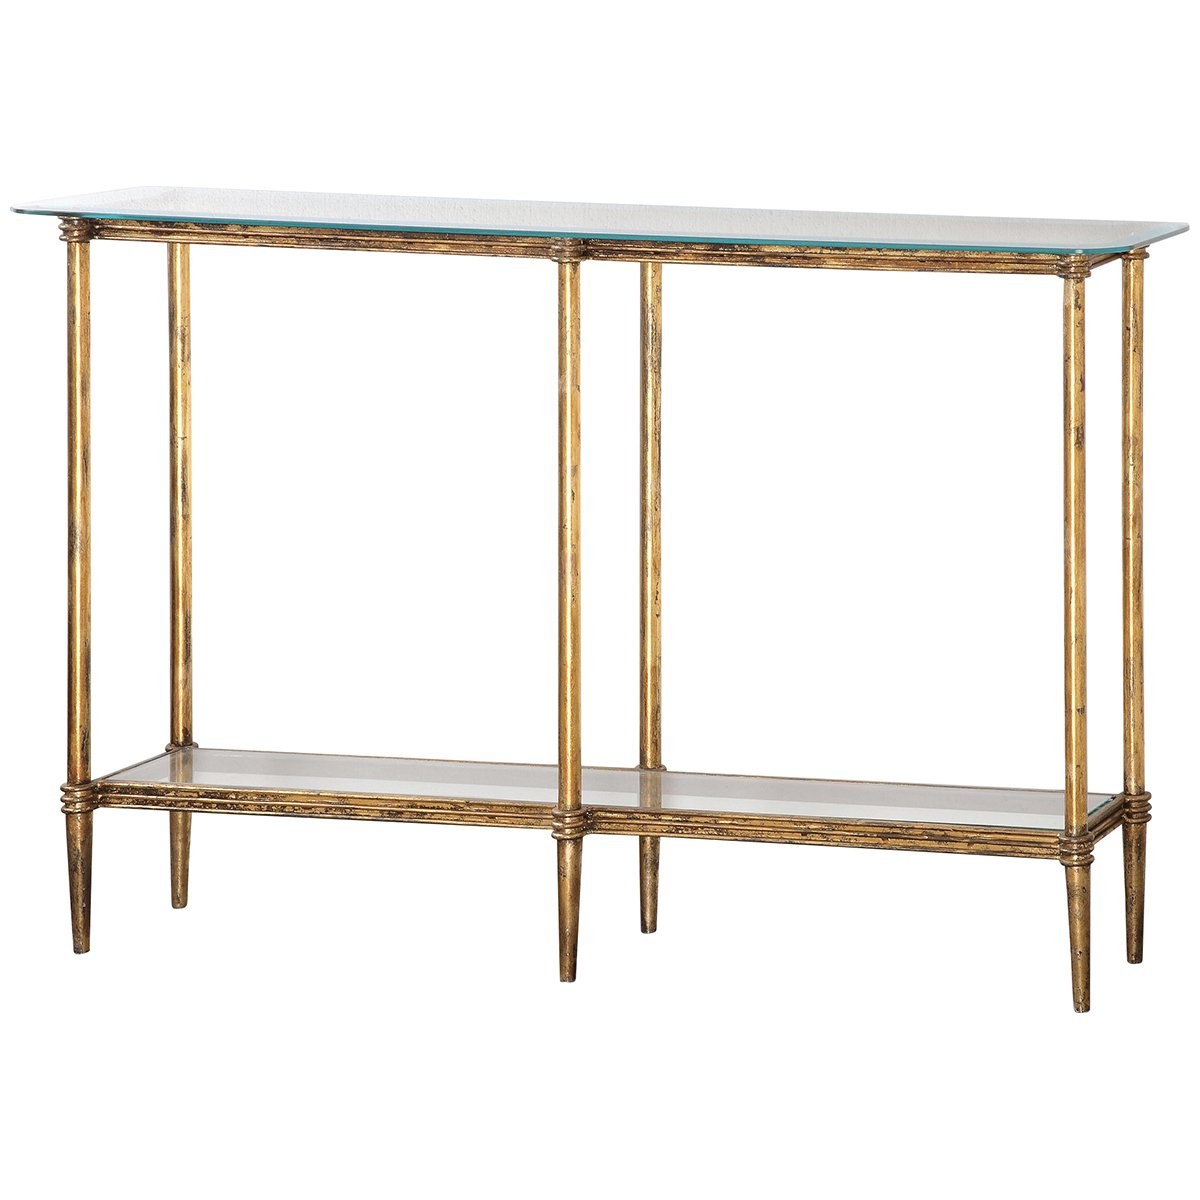 uttermost elenio glass console table gold accent kitchen dining tablecloth sliding barn door for room bohemian coffee square legs retro couch small metal end tennis circular patio